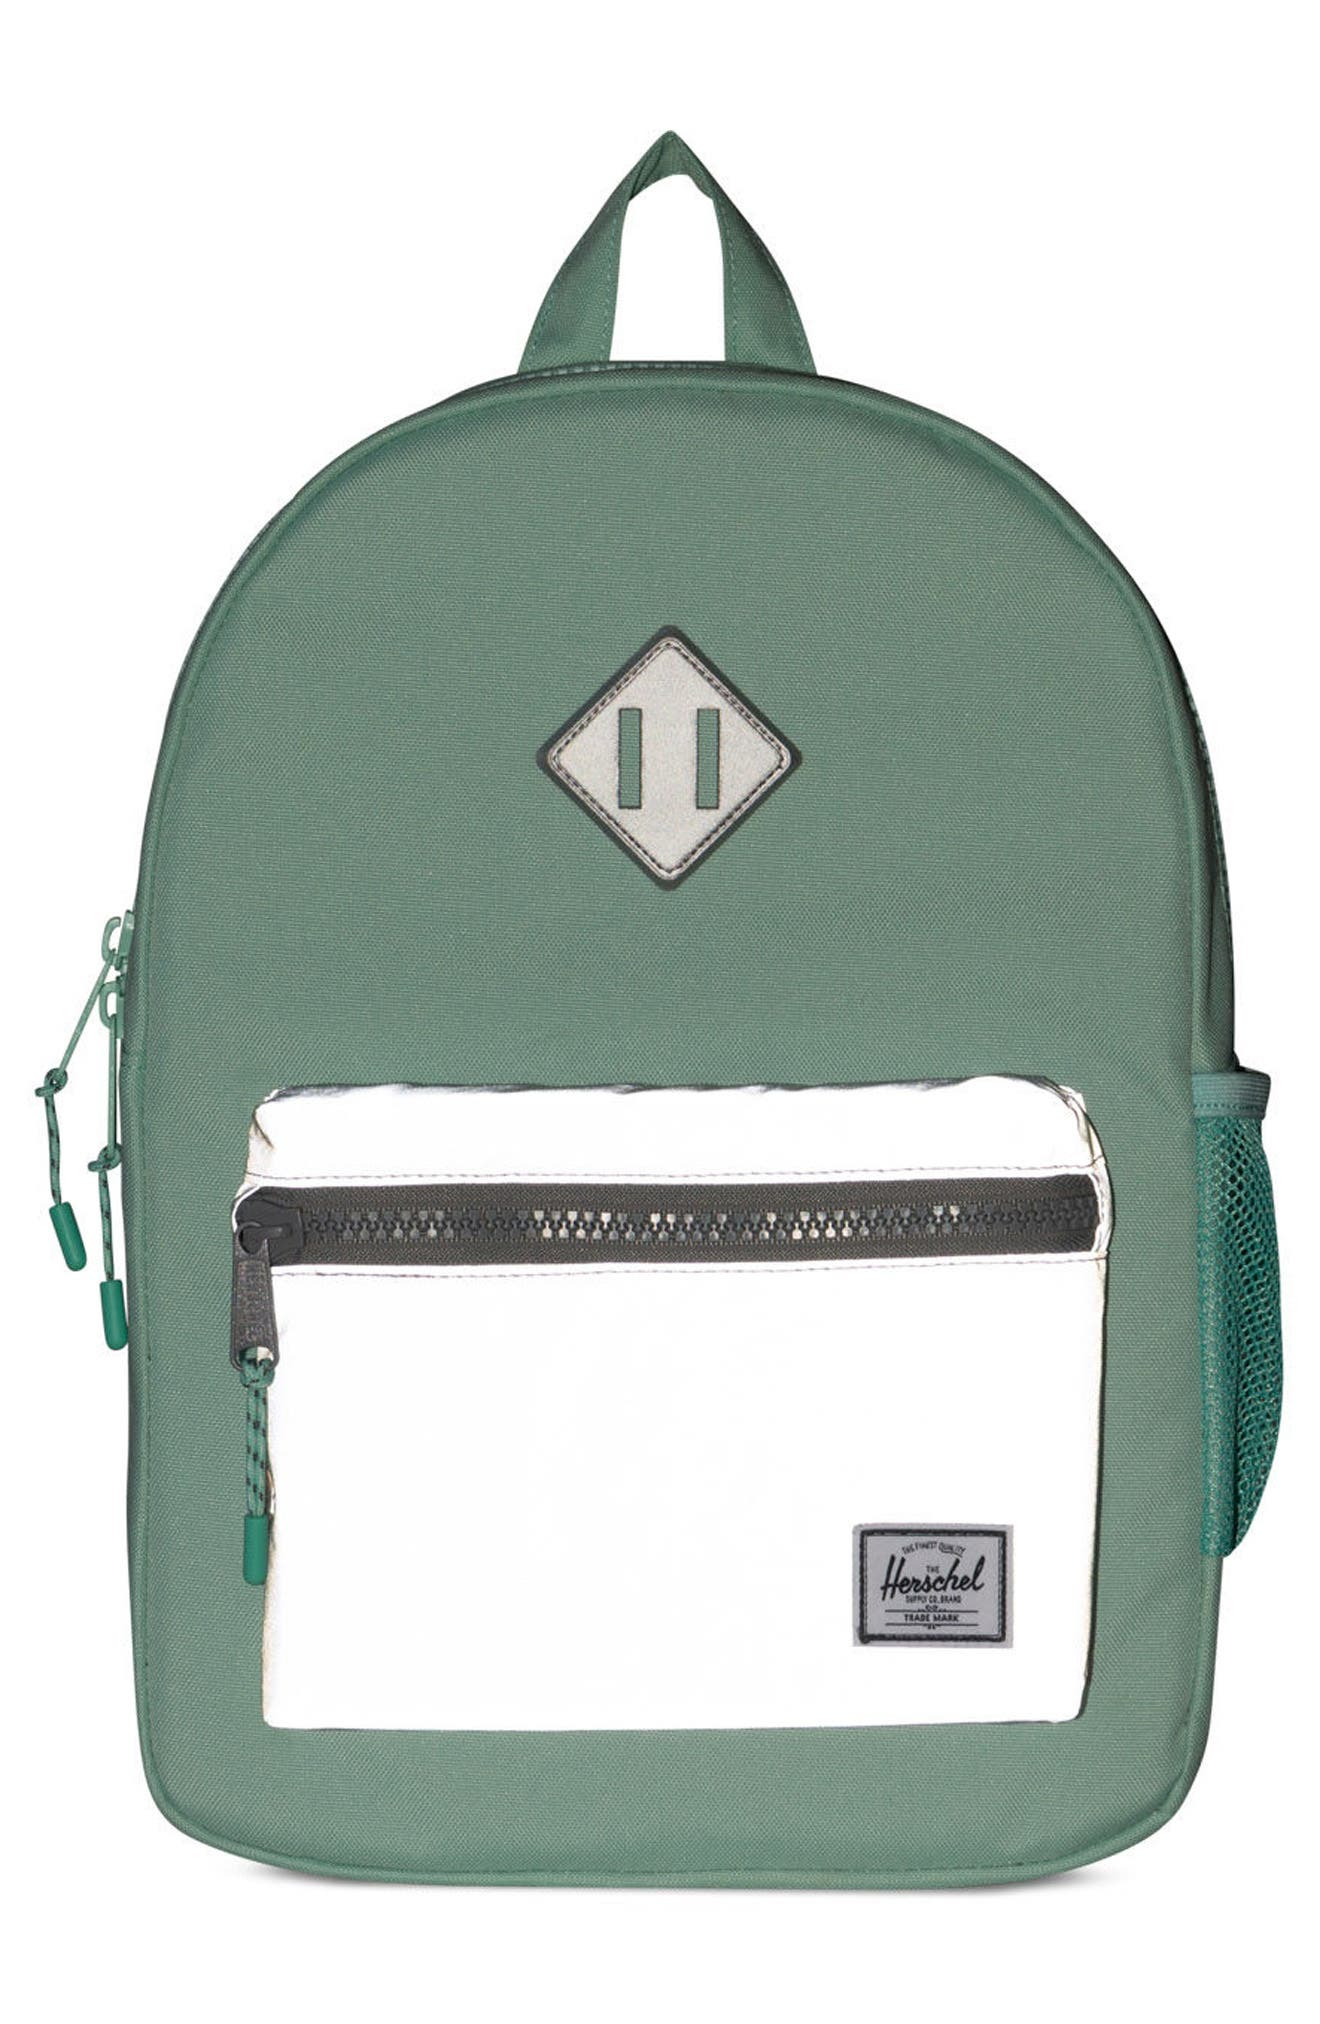 Heritage Backpack,                             Alternate thumbnail 4, color,                             Yucca/ Reflective Rubber